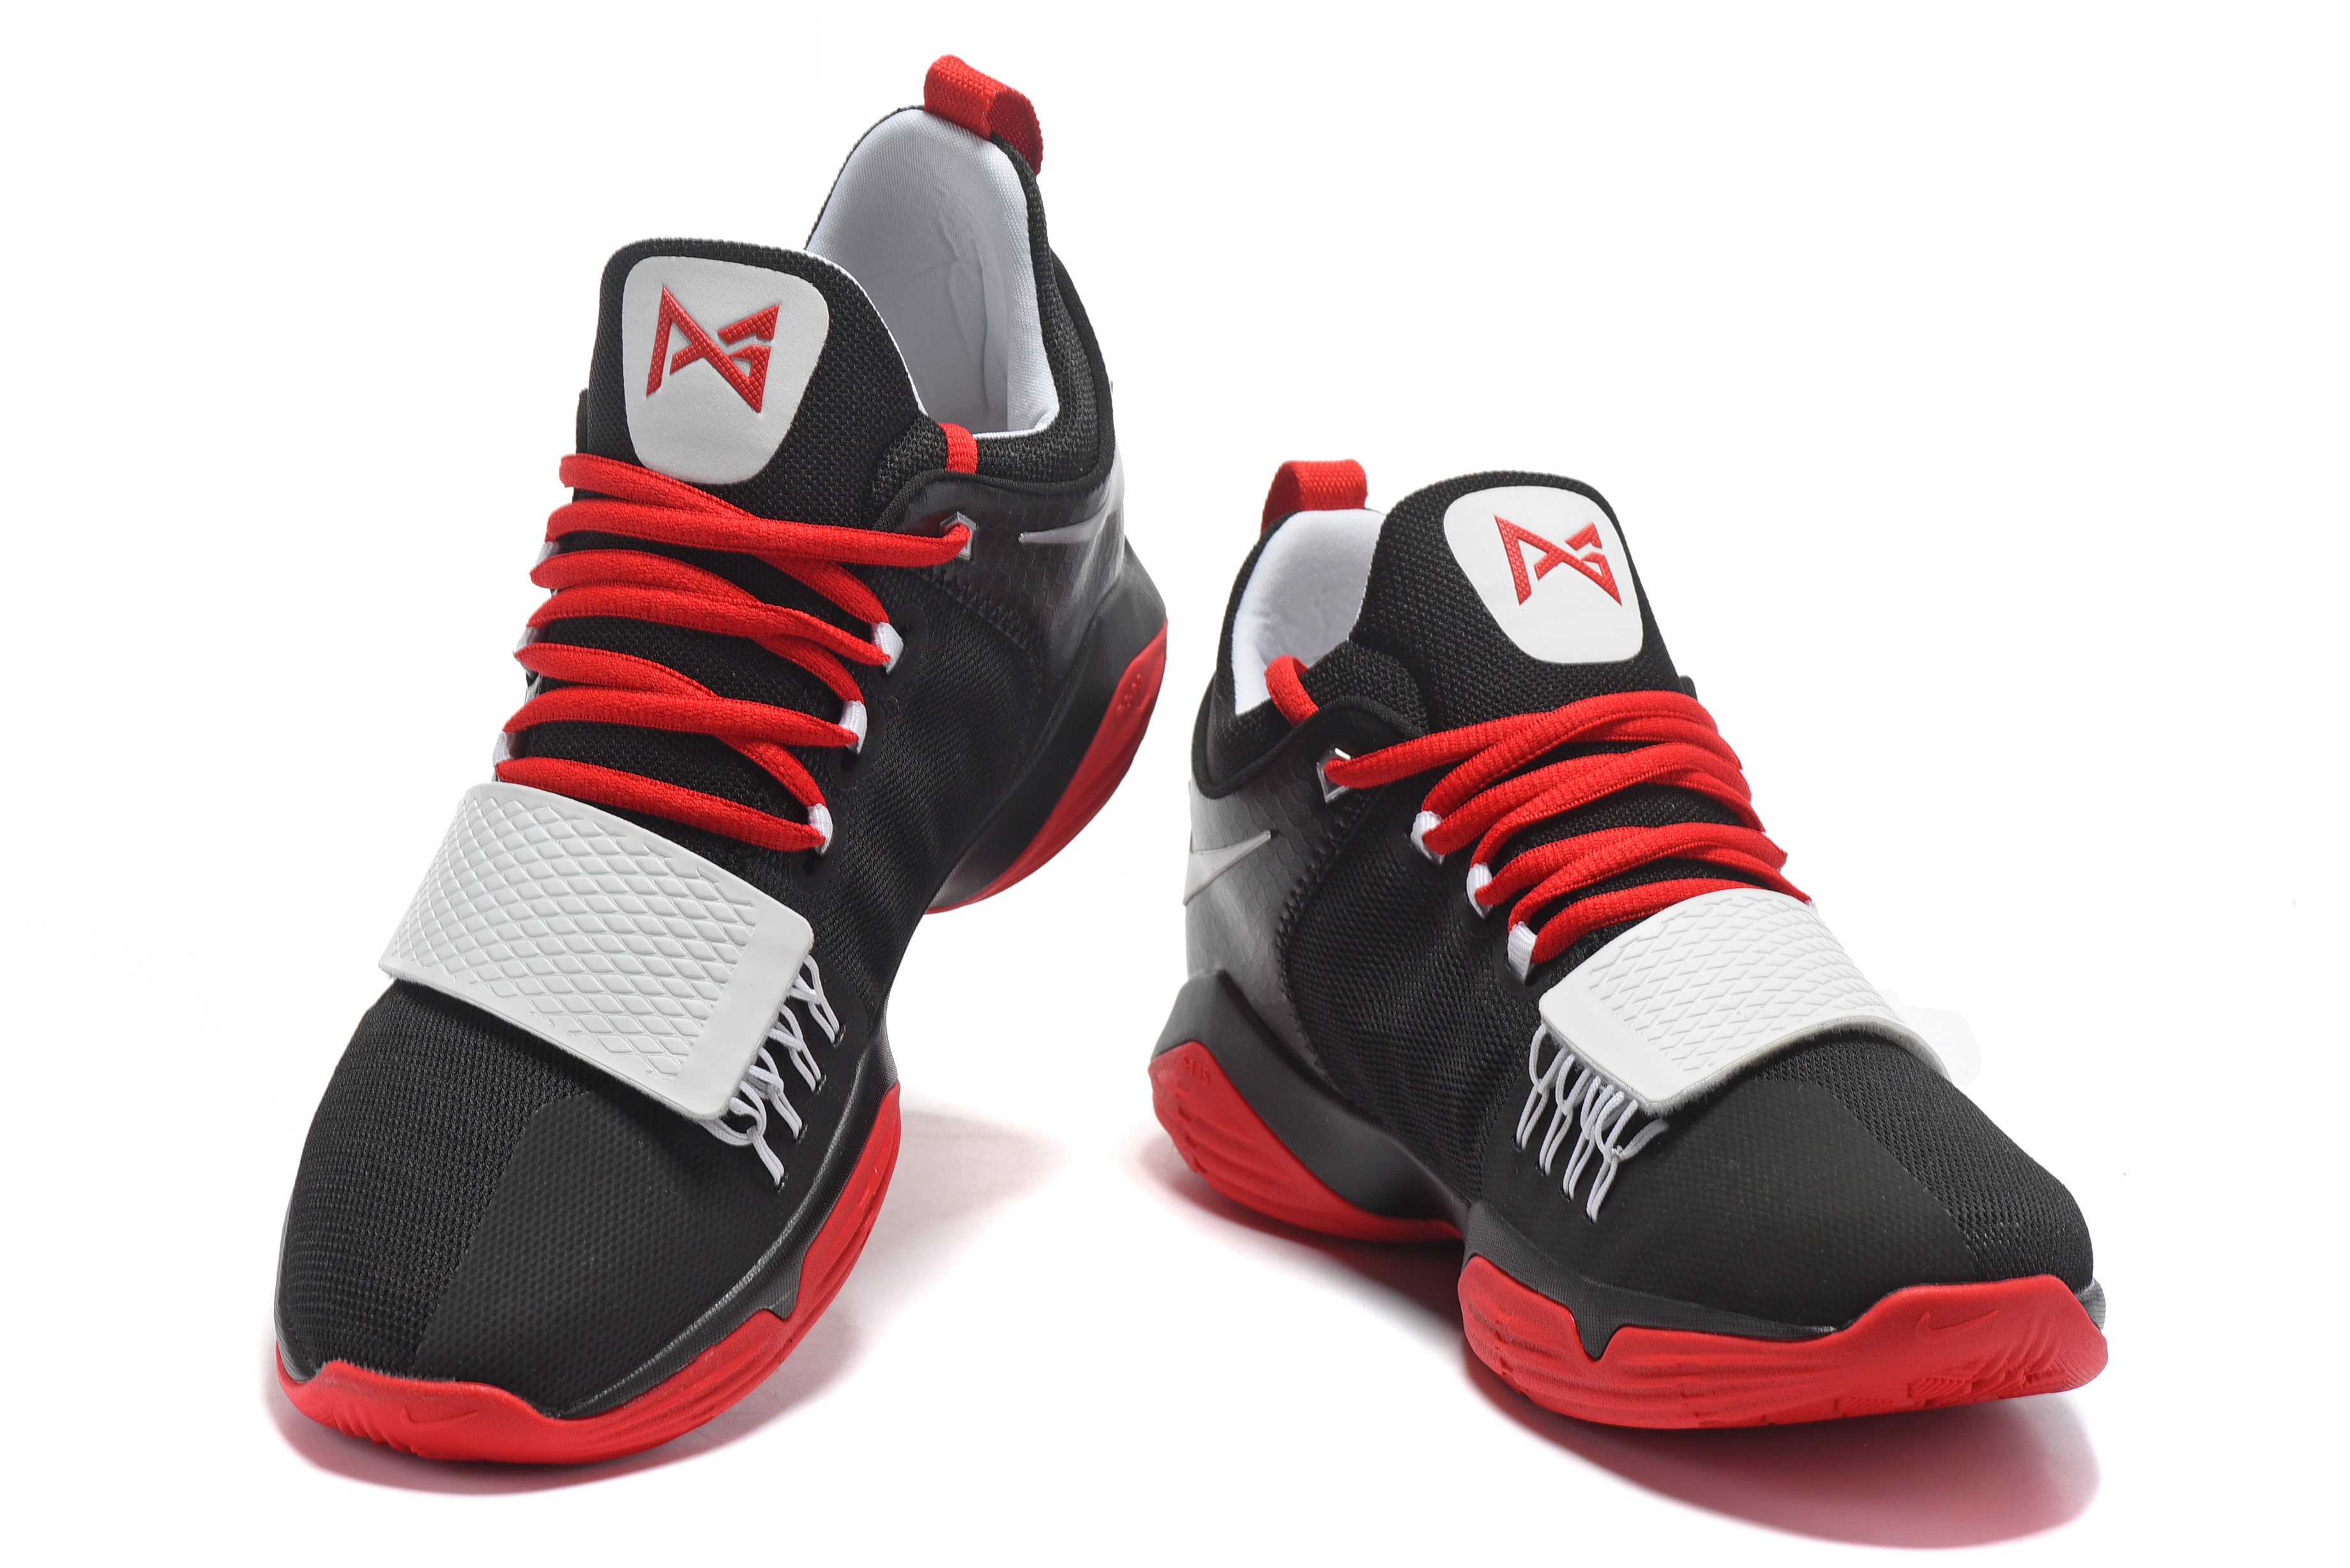 Paul George 1 Black Red Shoes On Sale